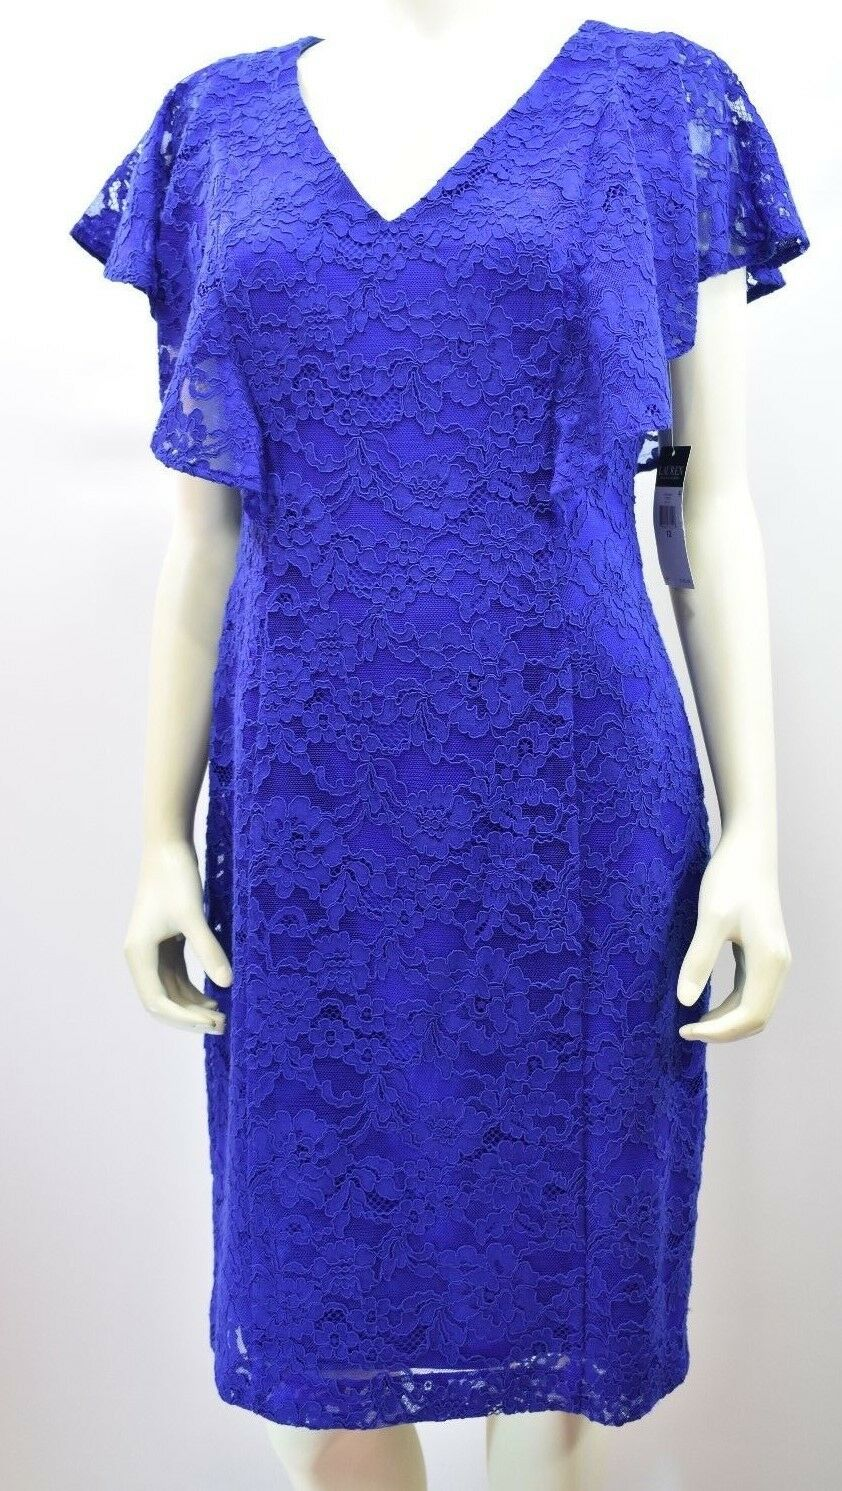 RALPH LAUREN LACE SHEATH DRESS SZ 12 NEW WITH TAG